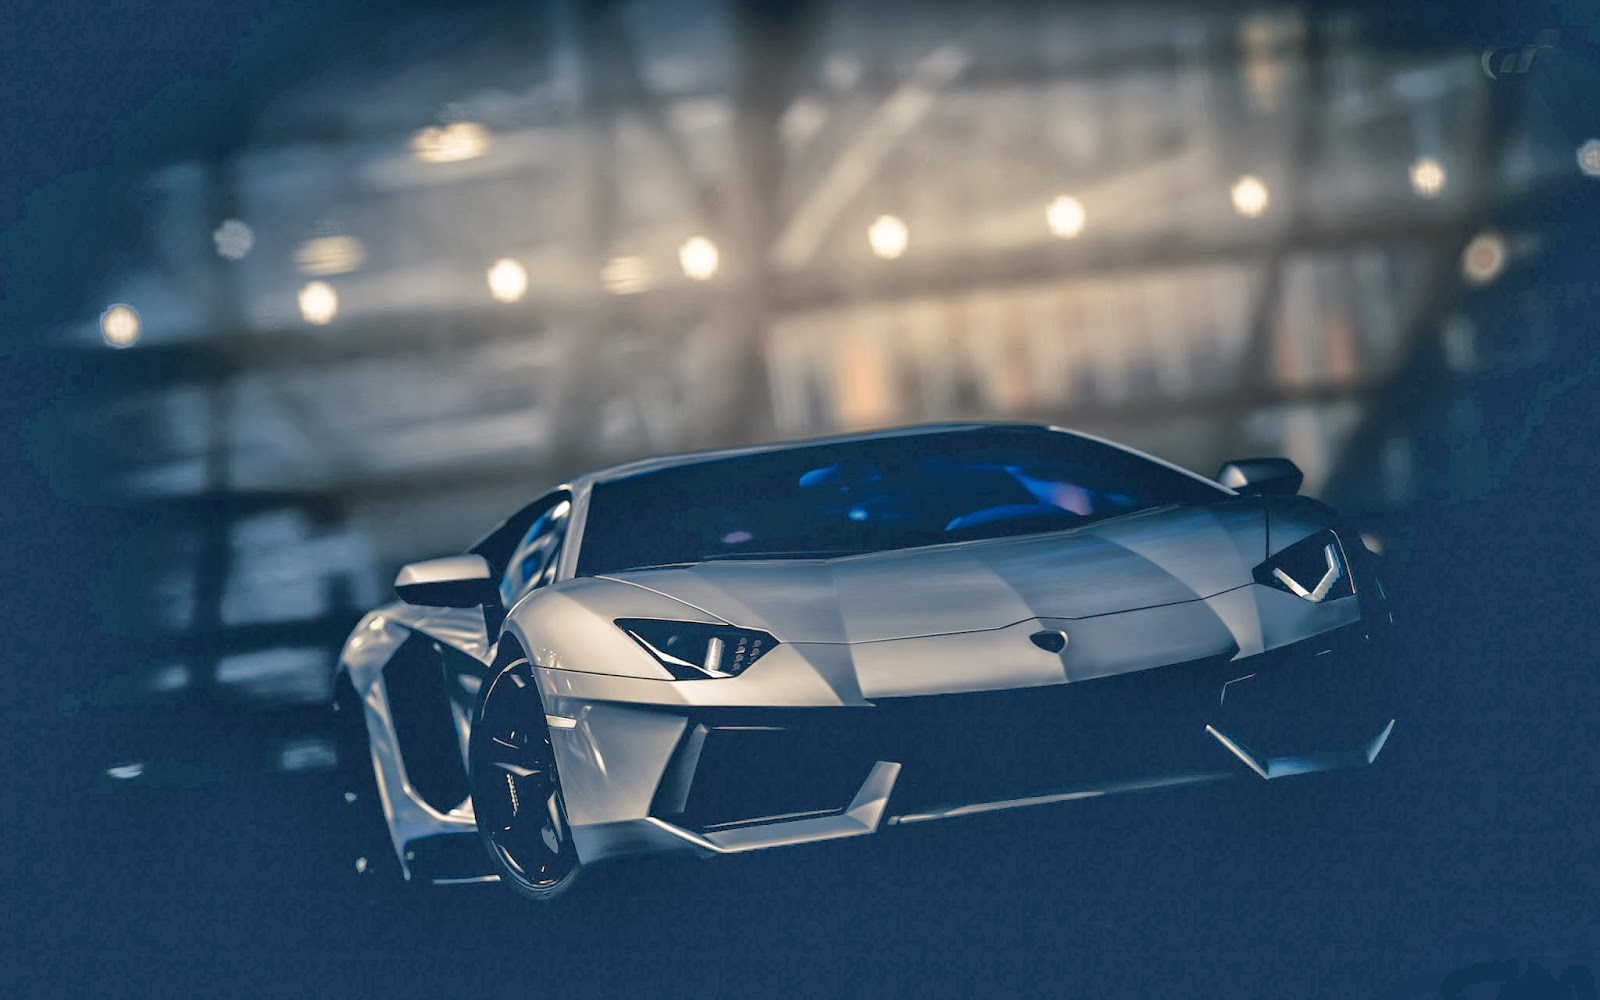 Windows 8 hd wallpapers cars hd wallpapers part 4 - Car wallpaper for windows xp ...